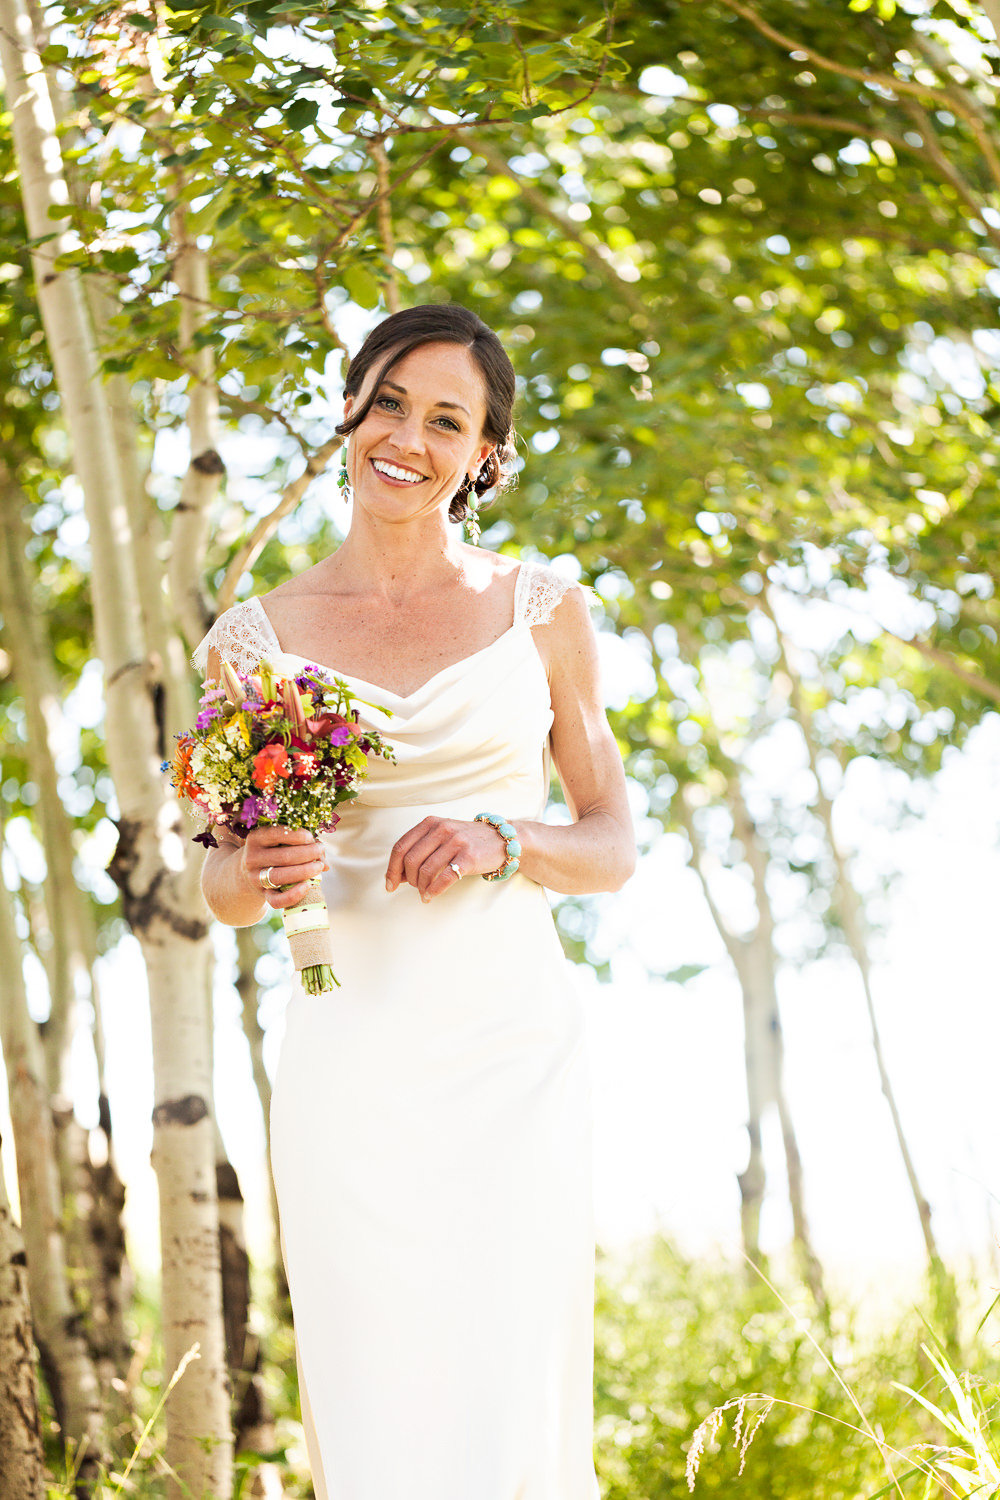 mcleod-montana-wedding-bride-walking-aisle.jpg